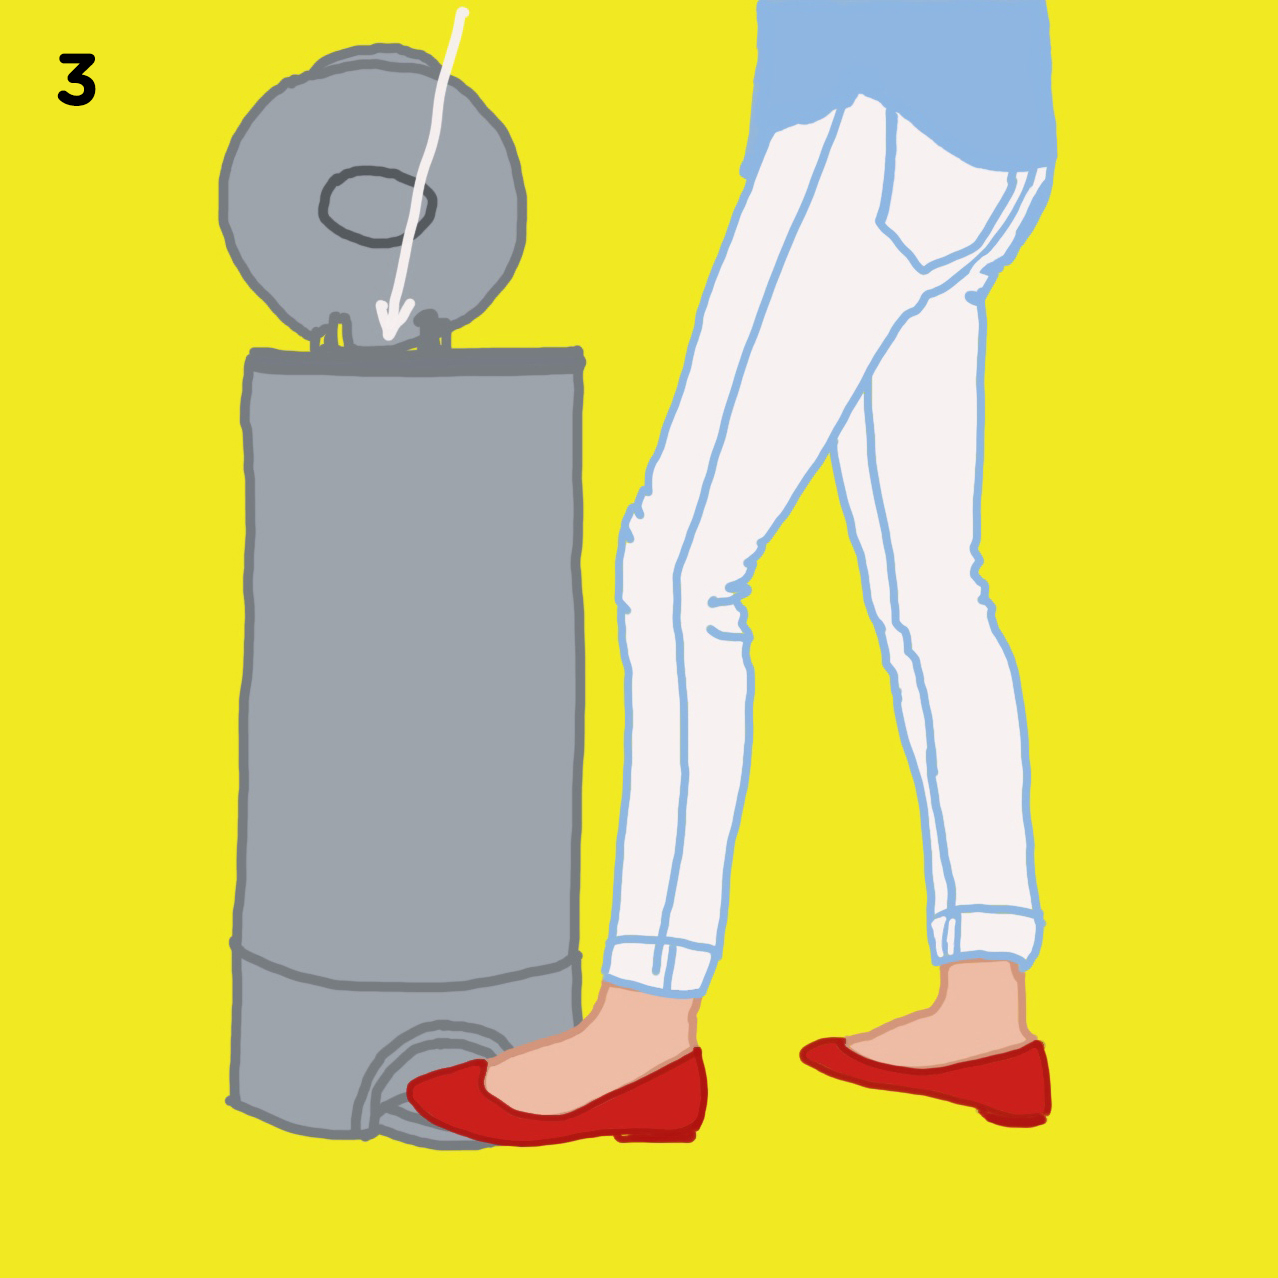 3. SPIT IT OUT   Spit the oil into a trash rather than the sink or toilet when you're done as oils can build up and clog your pipes. At the end of your swishing, the viscous oil should have become milky white and thinner.